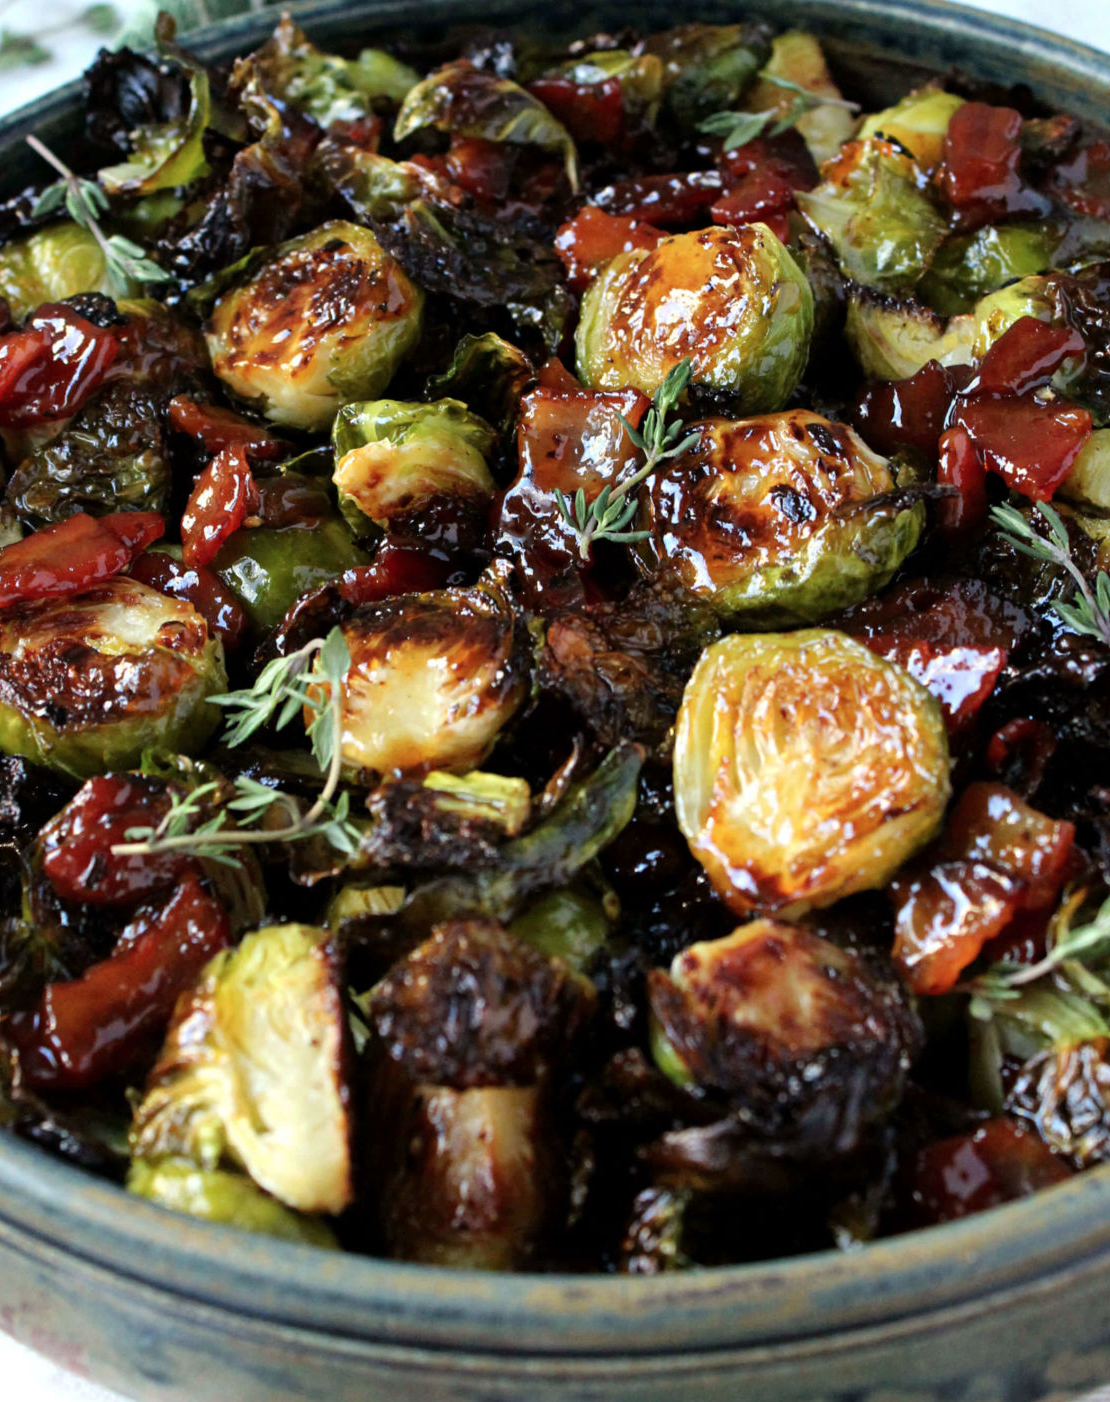 Brussel Sprout with BaconJam